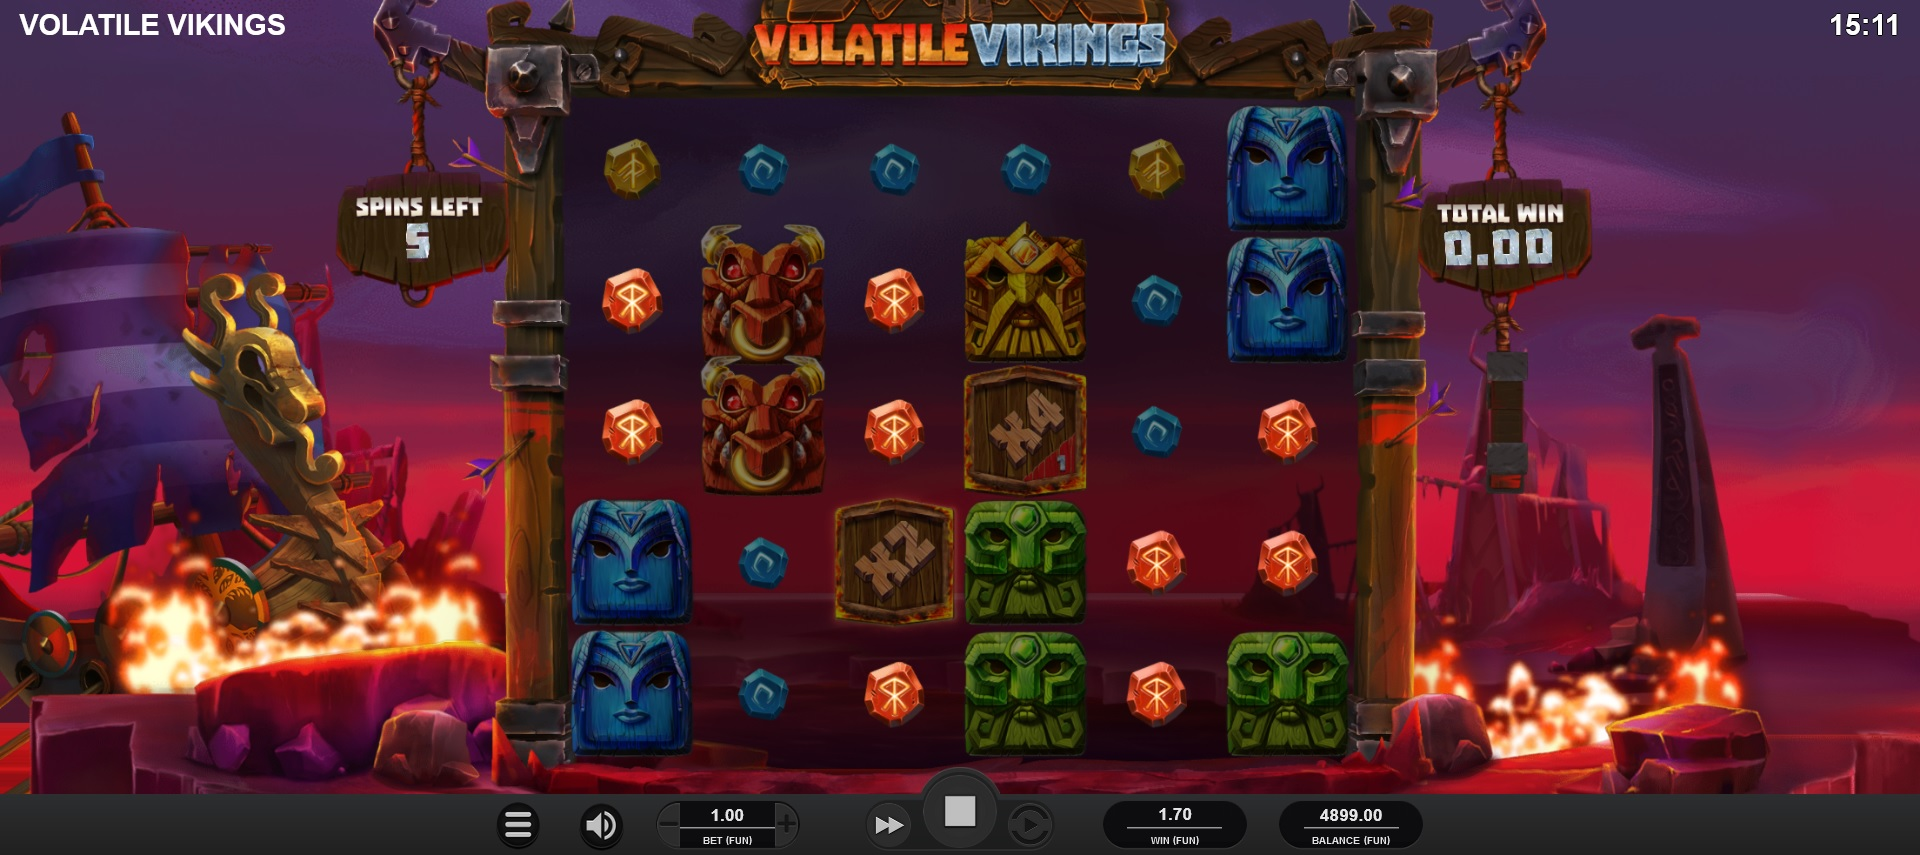 How to win big in Volatile Vikings – Free Spins feature